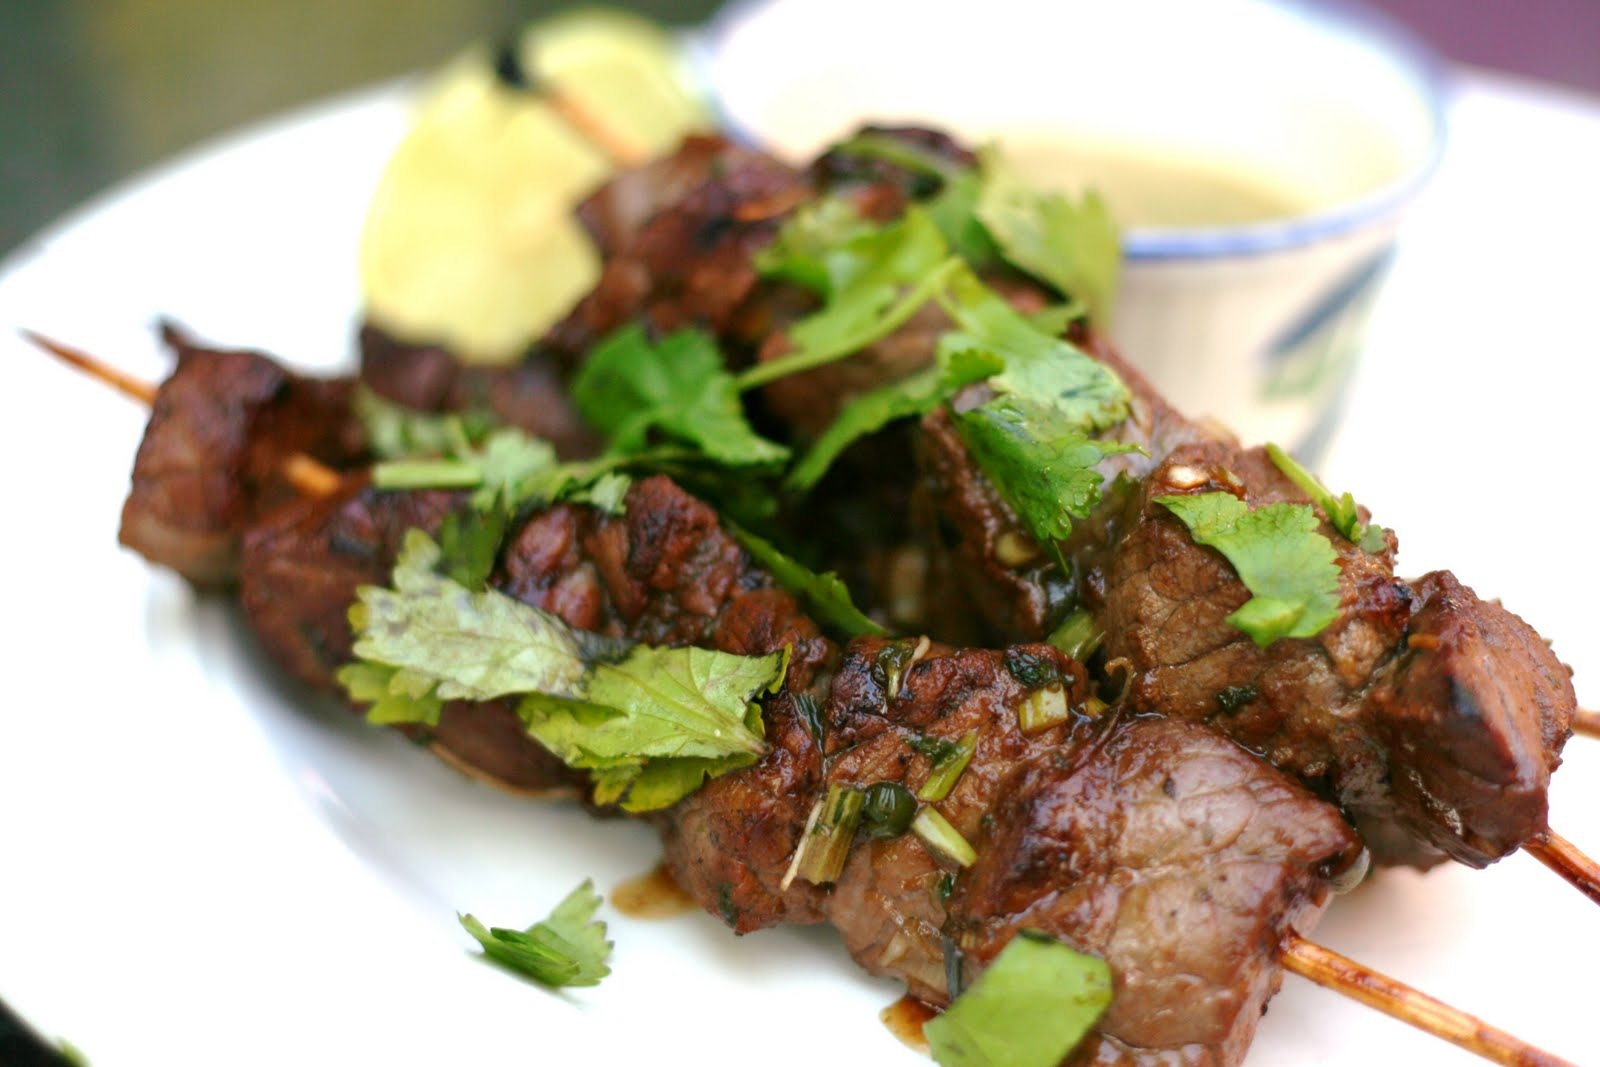 Antics of a cycling cook: Beef satay skewers with peanut dipping sauce